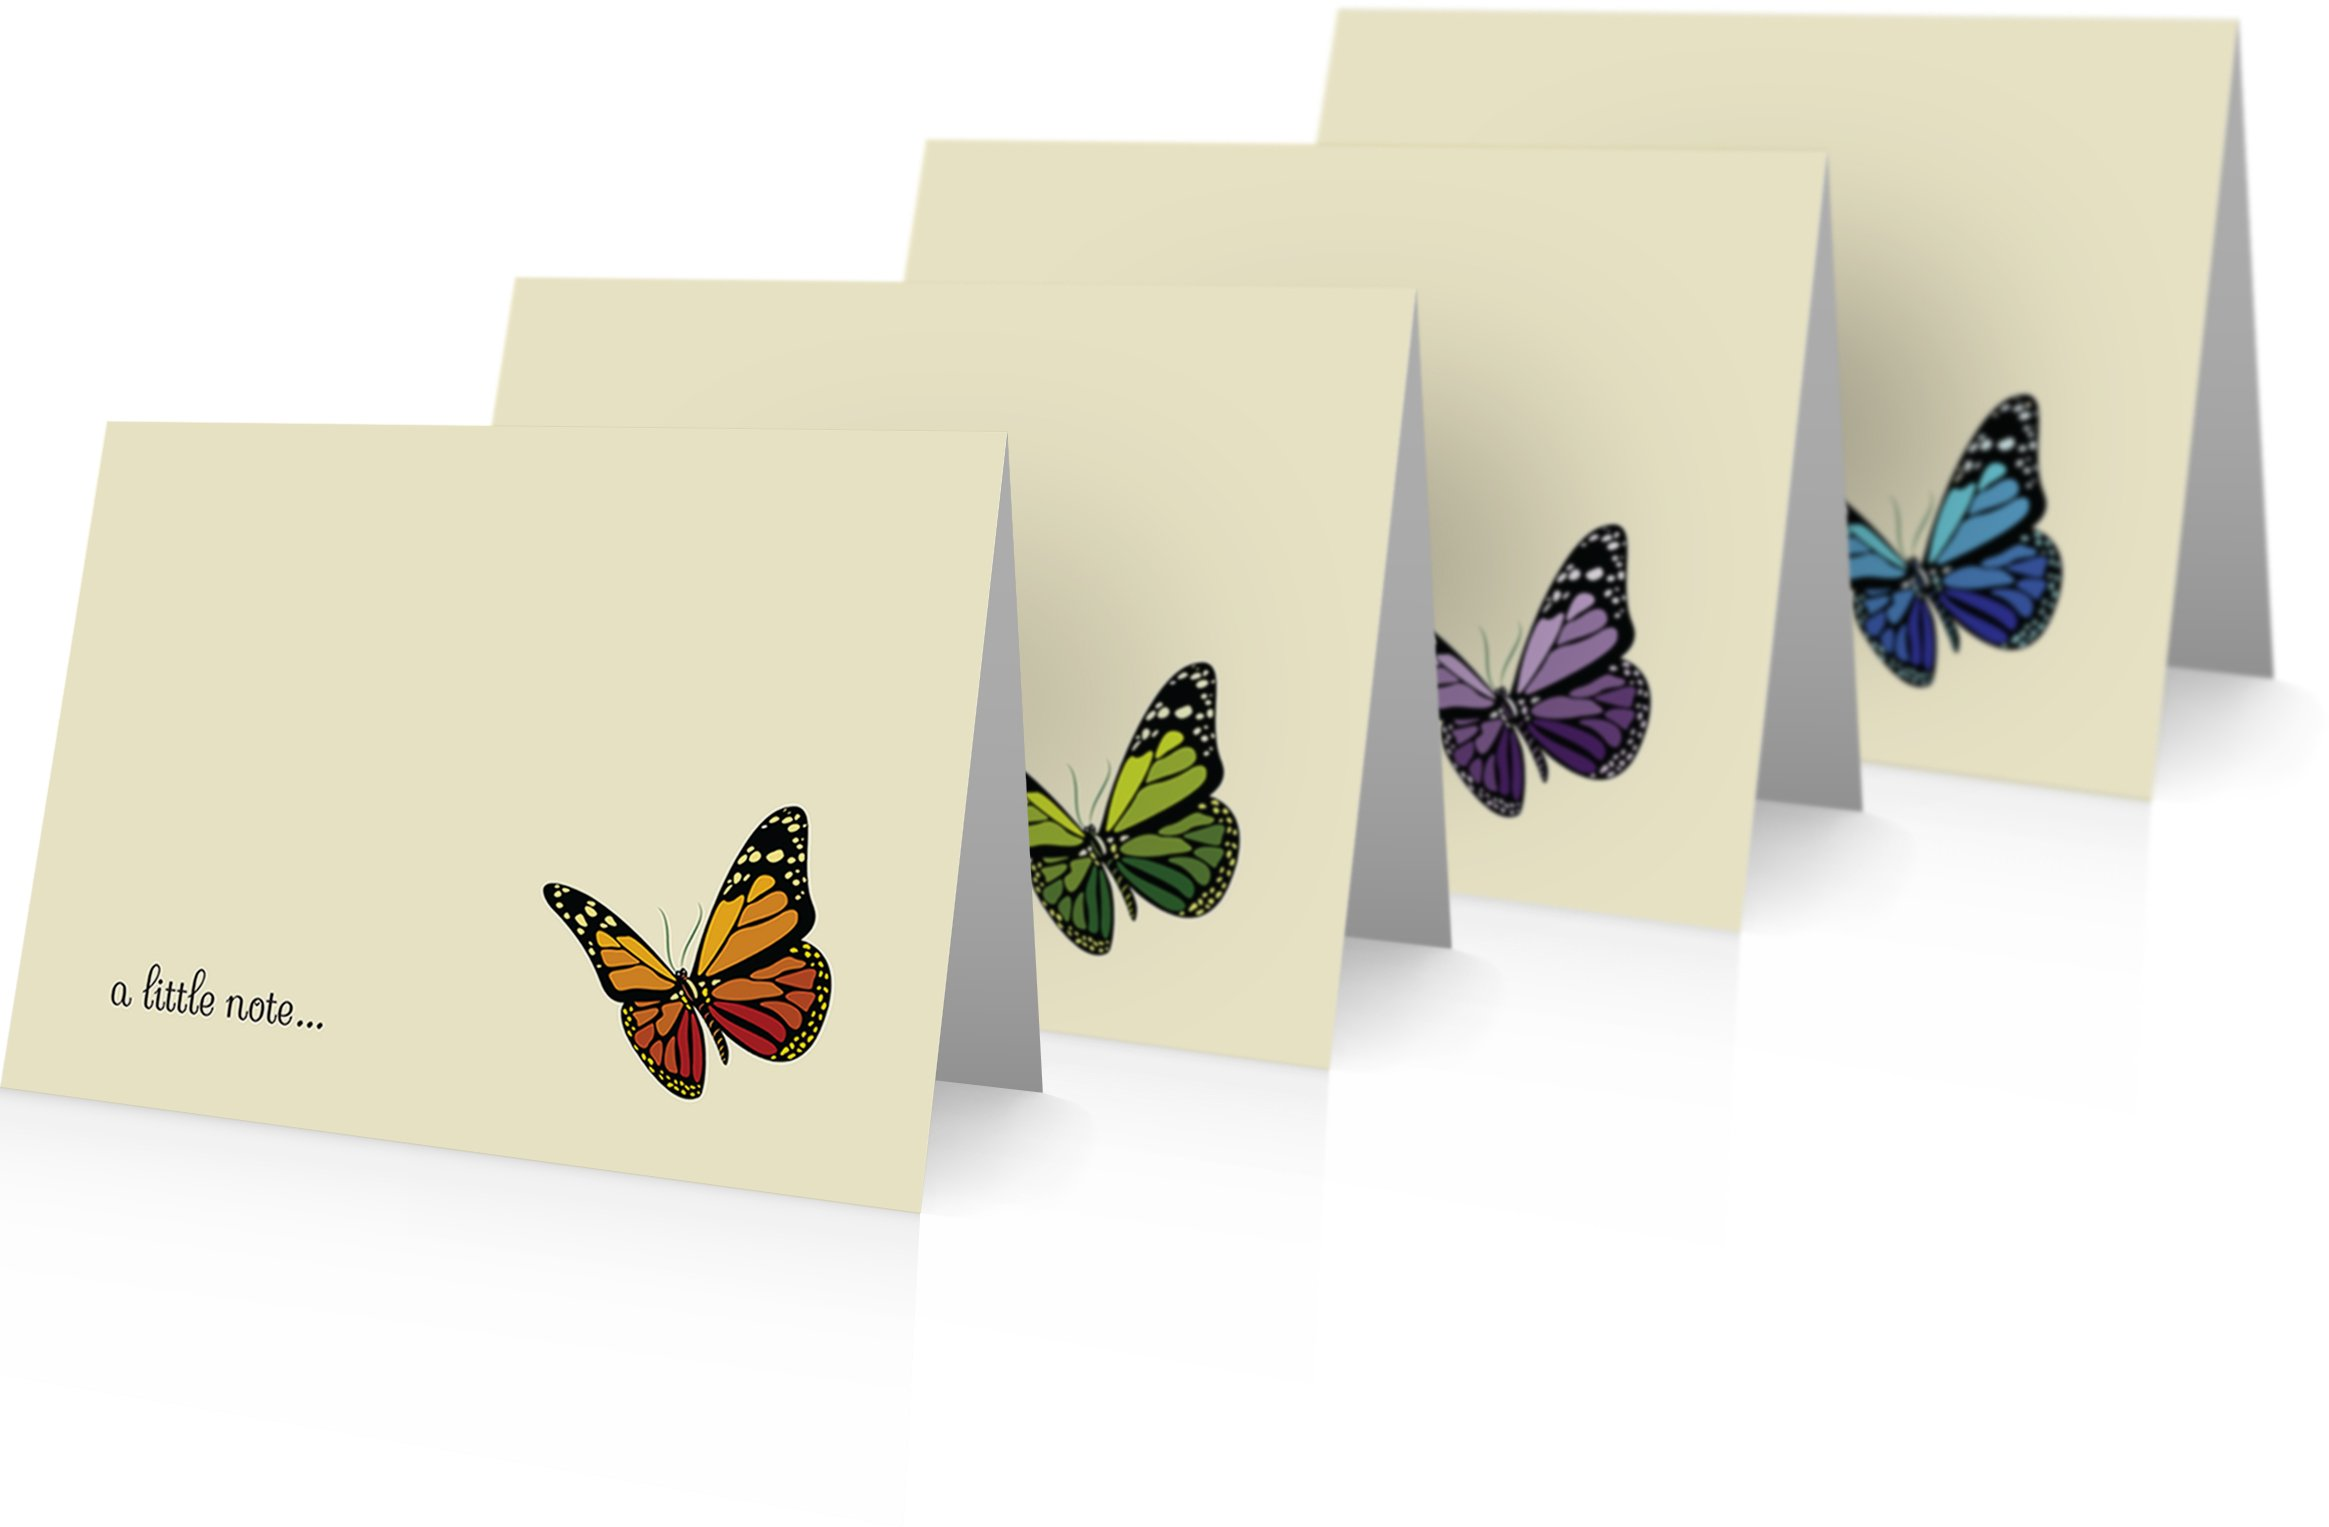 Butterfly Thank You Cards - 24 Cards and Envelopes - Butterfly Notecards